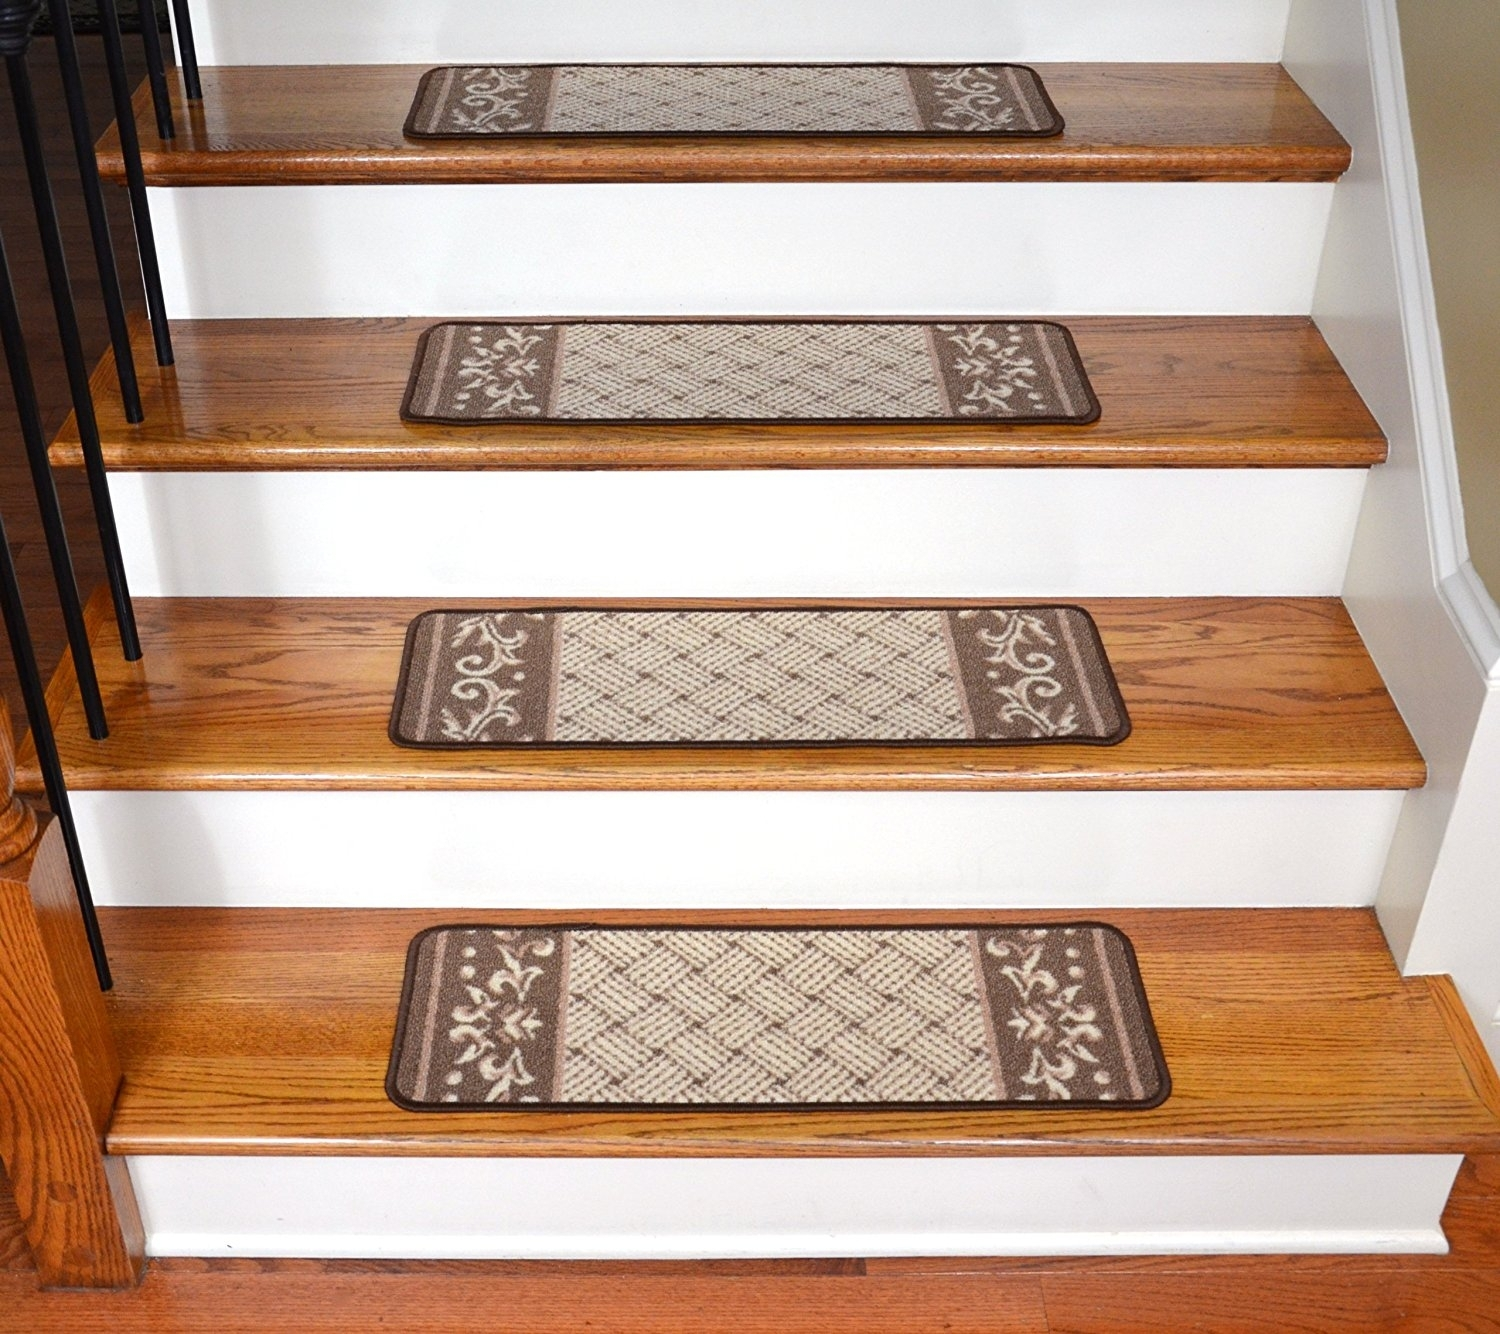 Top 15 Adhesive Carpet Strips For Stairs Stair Tread | Buy Carpet For Stairs